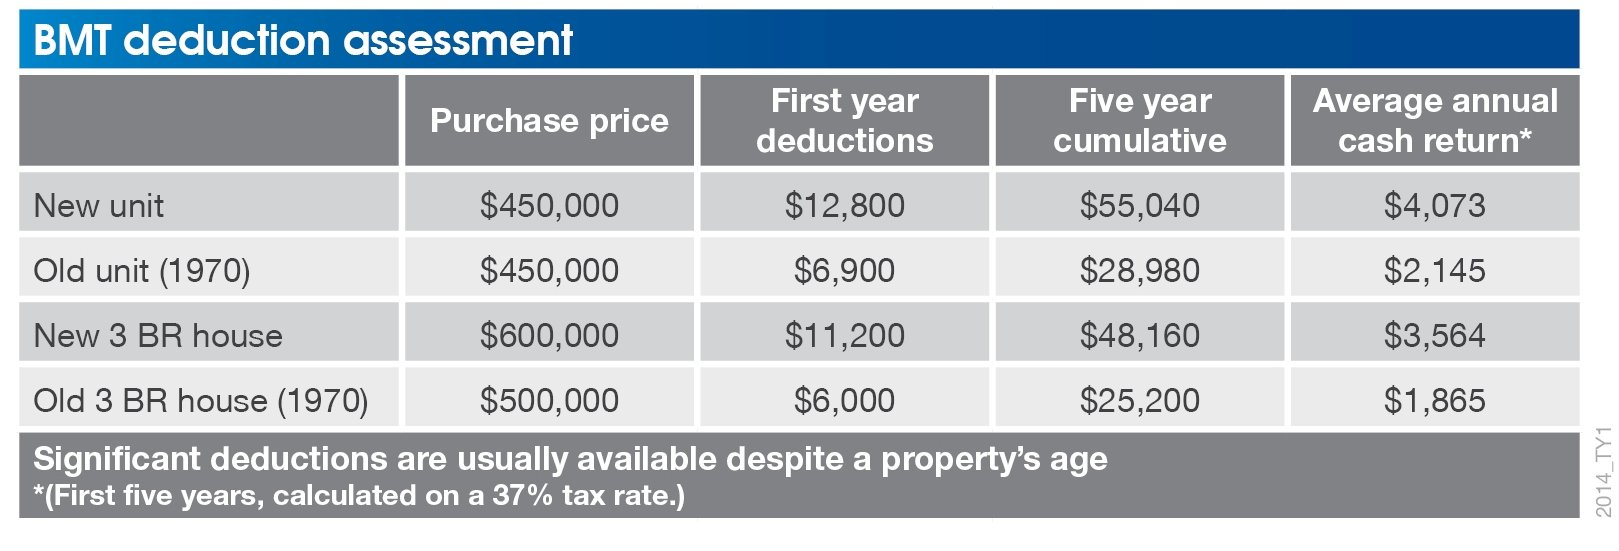 Claim Depreciation Deductions : 2014 TY1 Deduction assessment BMT version from www.pumpedonproperty.com size 1619 x 551 jpeg 247kB